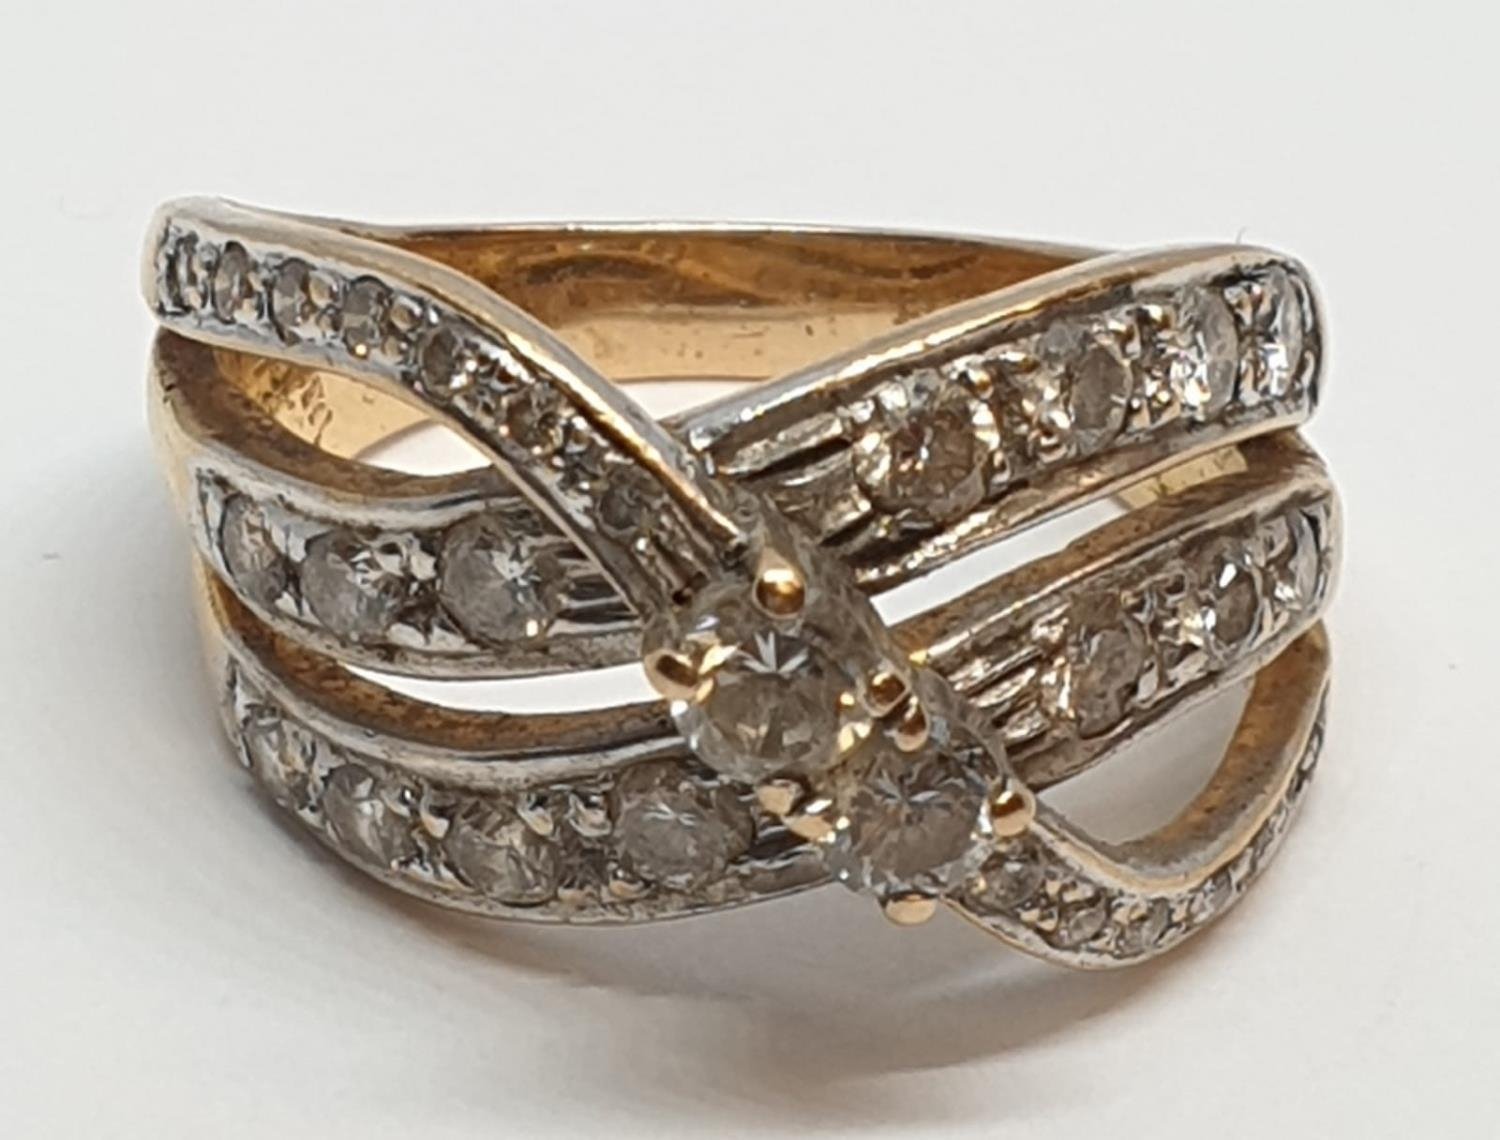 18ct Yellow gold diamond set fancy three row twist band ring. Weight 8.5g, Approx. 0.60ct of - Image 6 of 14